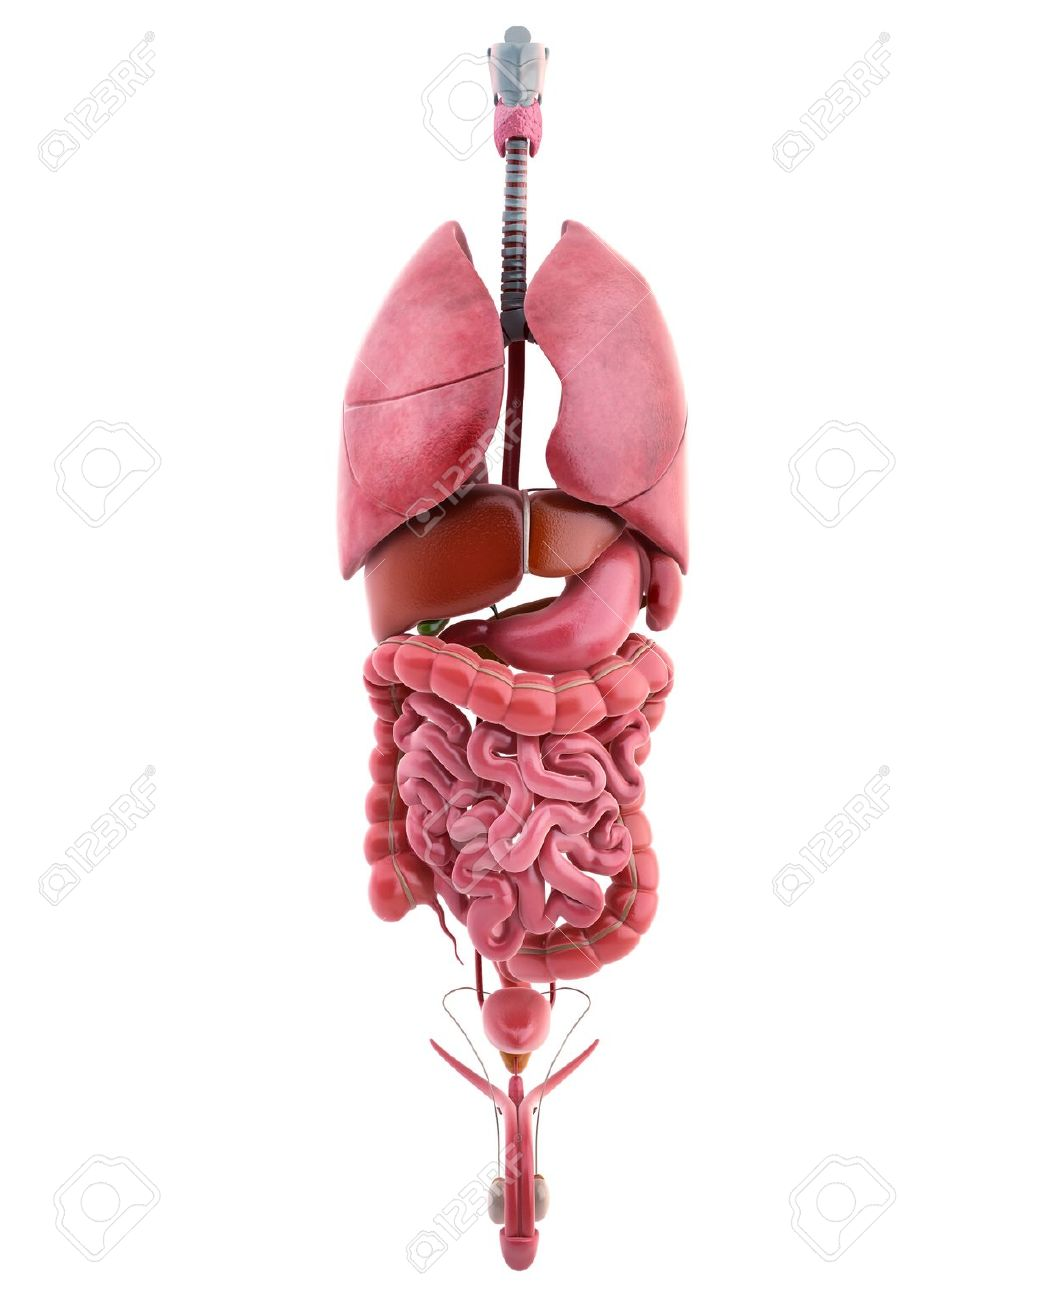 3d Illustration Of Internal Organs Of Male Body Stock Photo, Picture ...